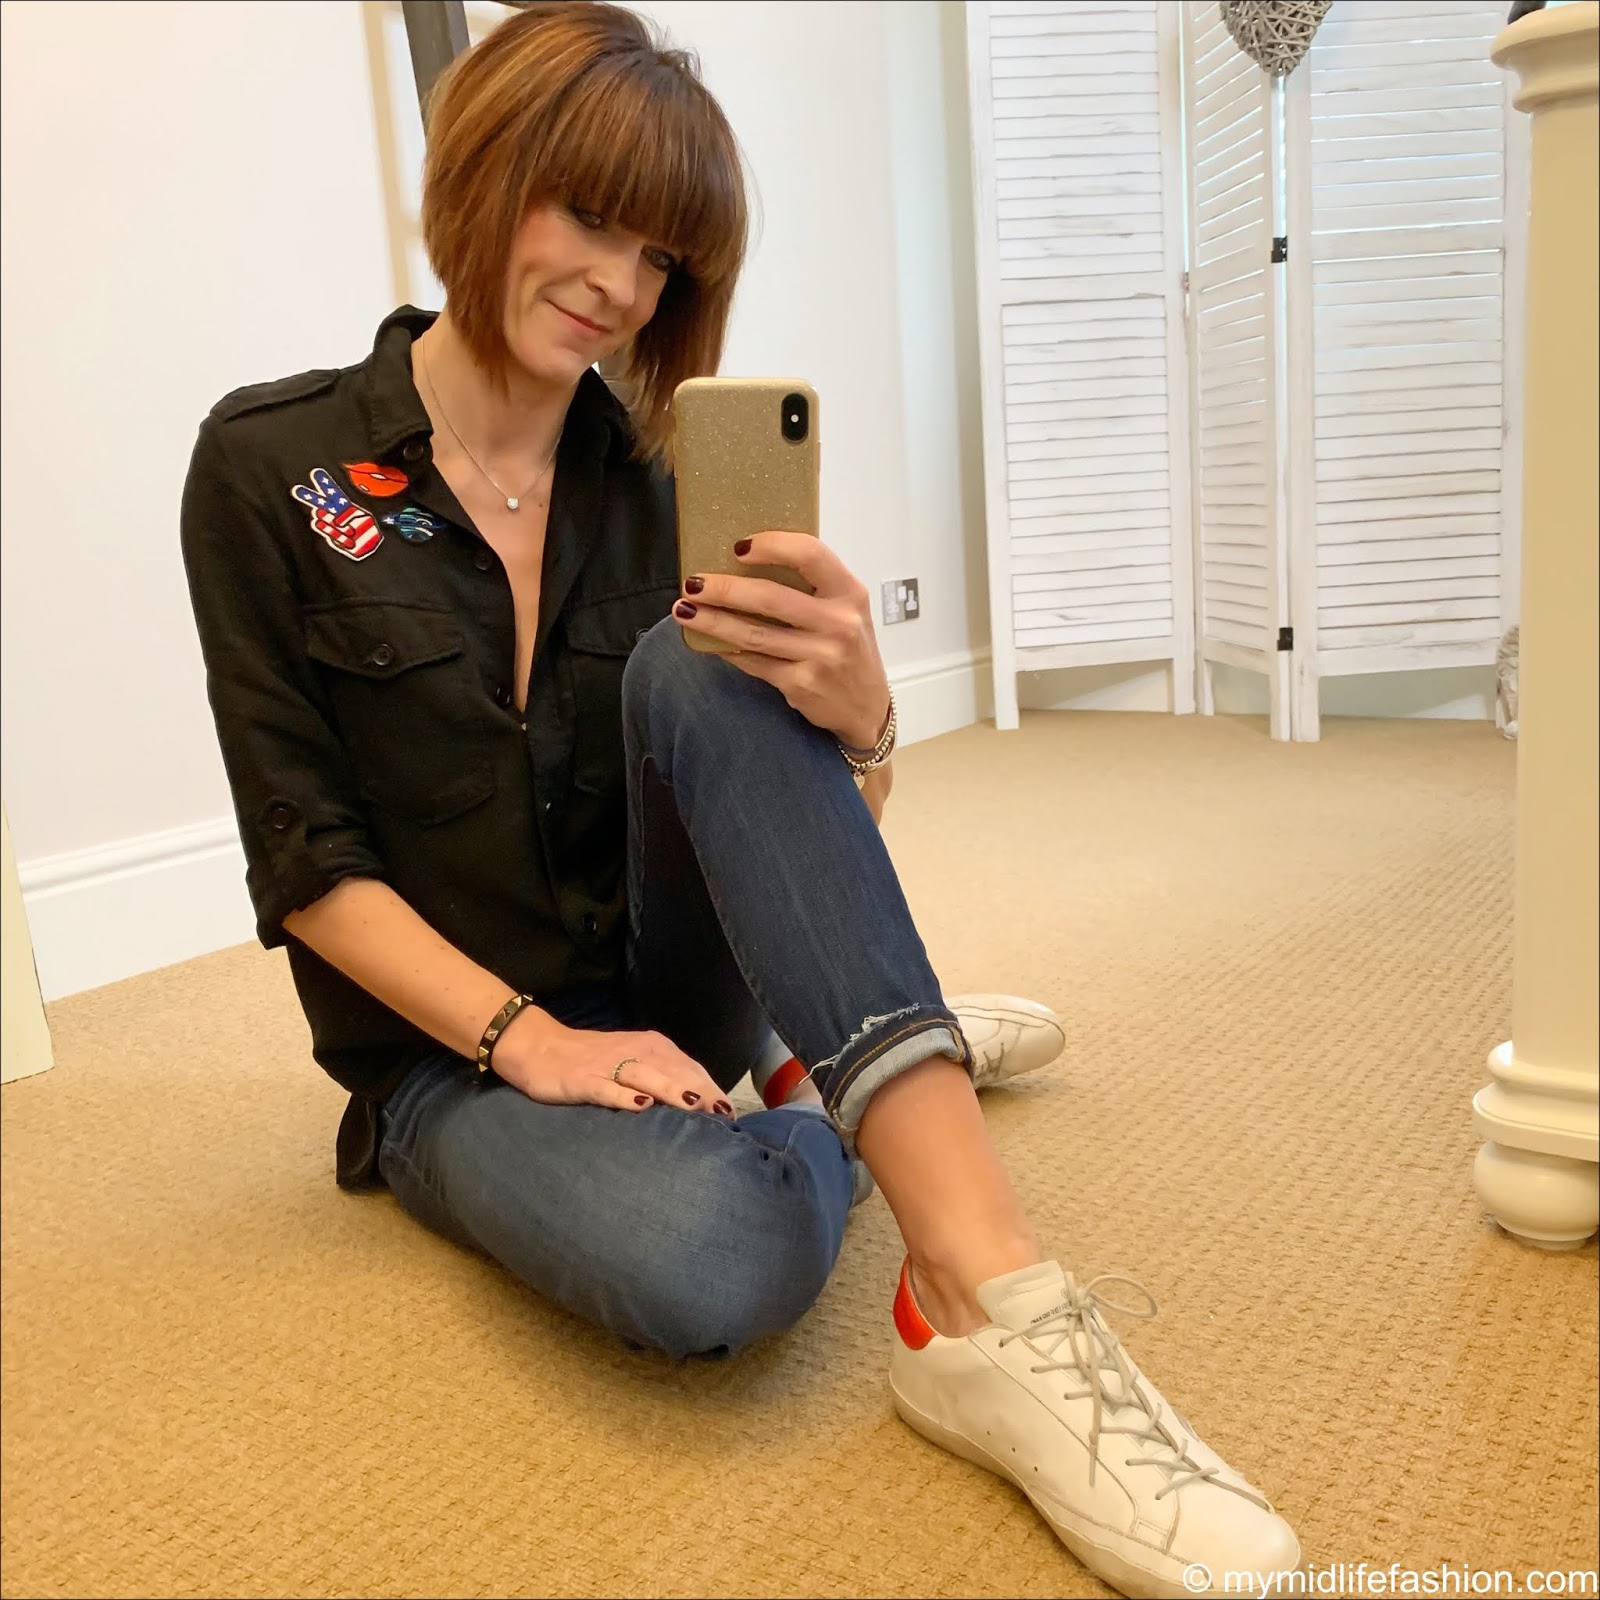 my midlife fashion, zara military shirt, j crew straight leg jeans, golden goose superstar low top leather trainers